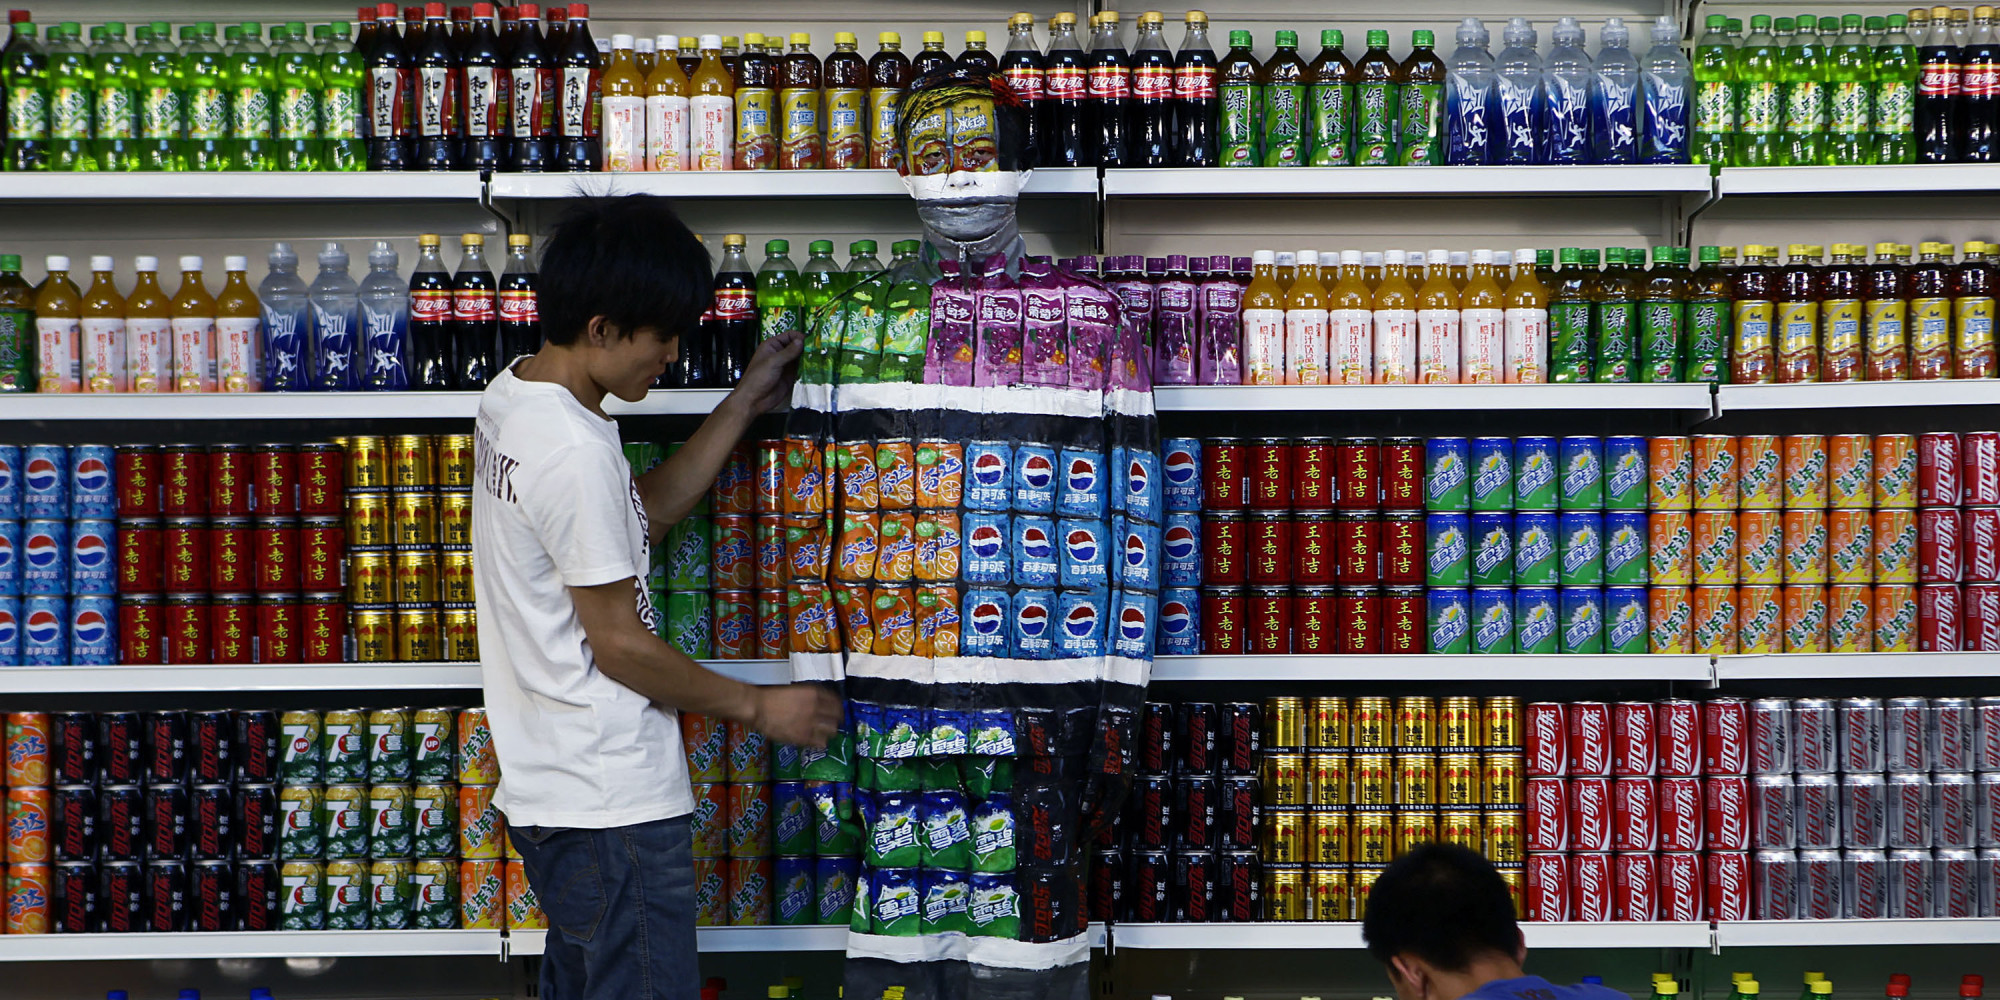 """Chinese artist Liu Bolin, center, is helped by his colleagues as painted to blend into rows of drinks in his artwork entitled """"Plasticizer,"""" to express his speechlessness at use of plasticizer in food additives, in his studio at the 798 Art District in Beijing, China, Wednesday, Aug. 10, 2011. (AP Photo)"""